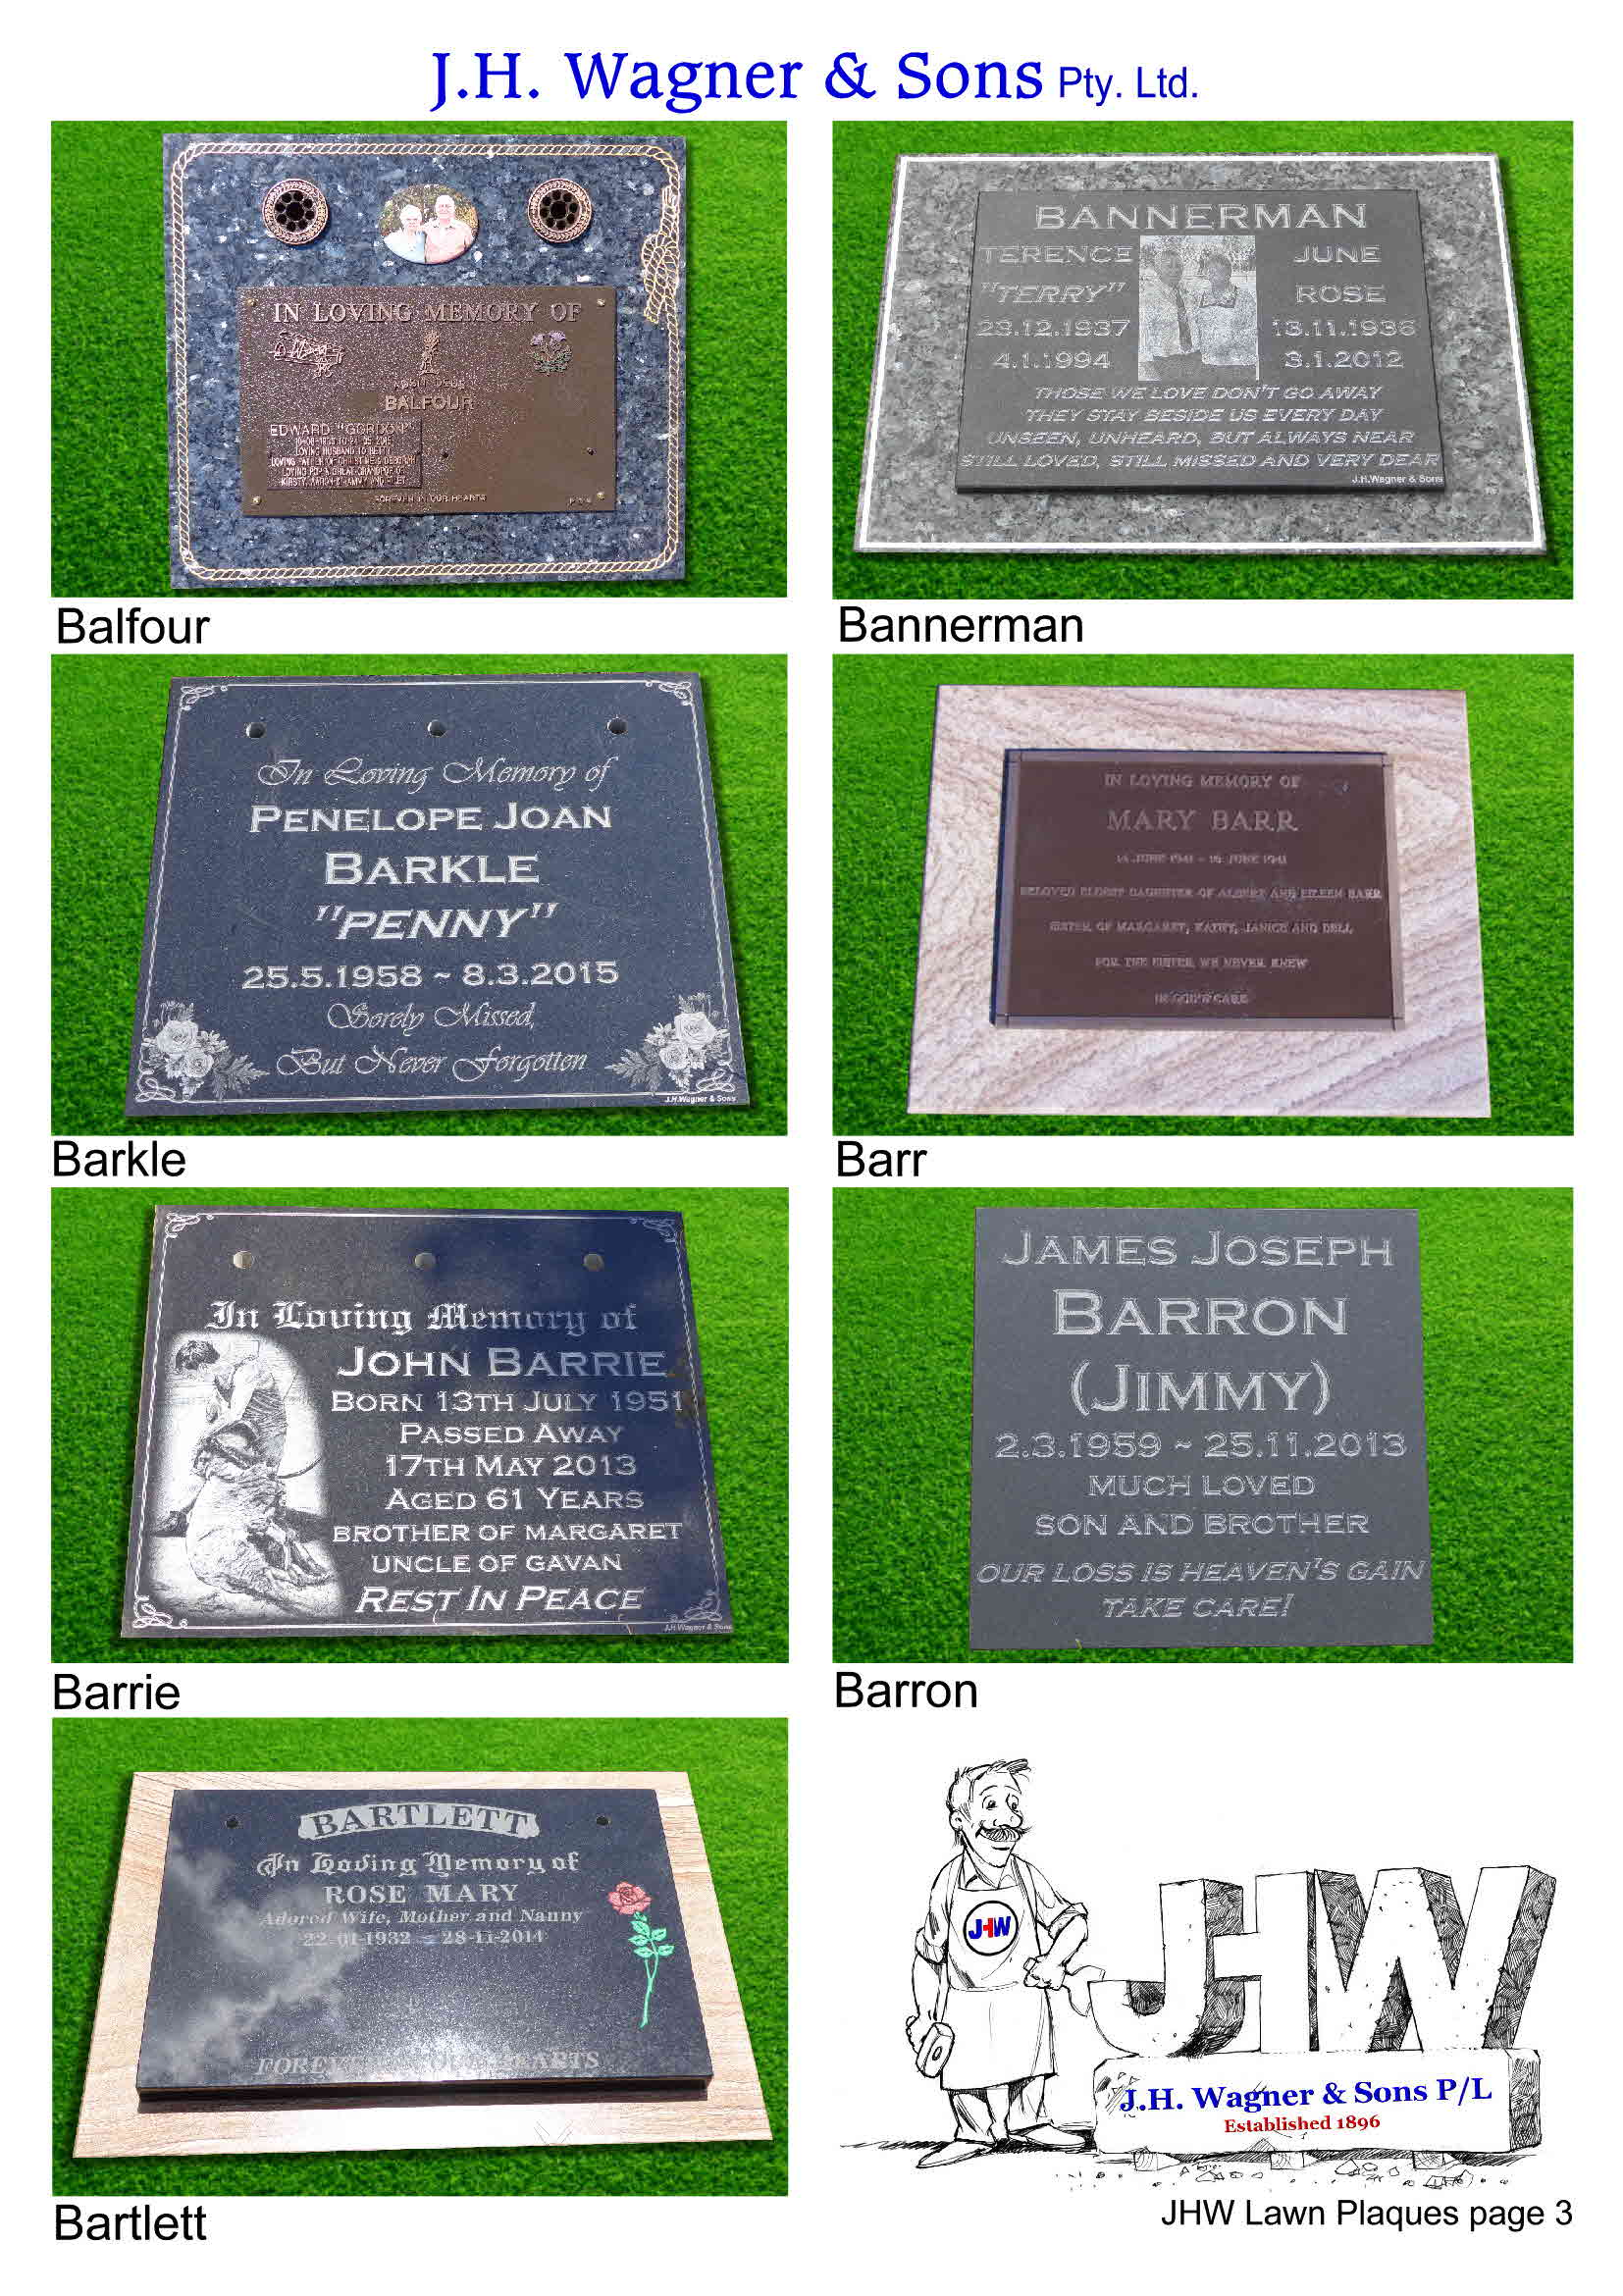 Lawn plaques and Tablets from J.H. Wagner & Sons page 3